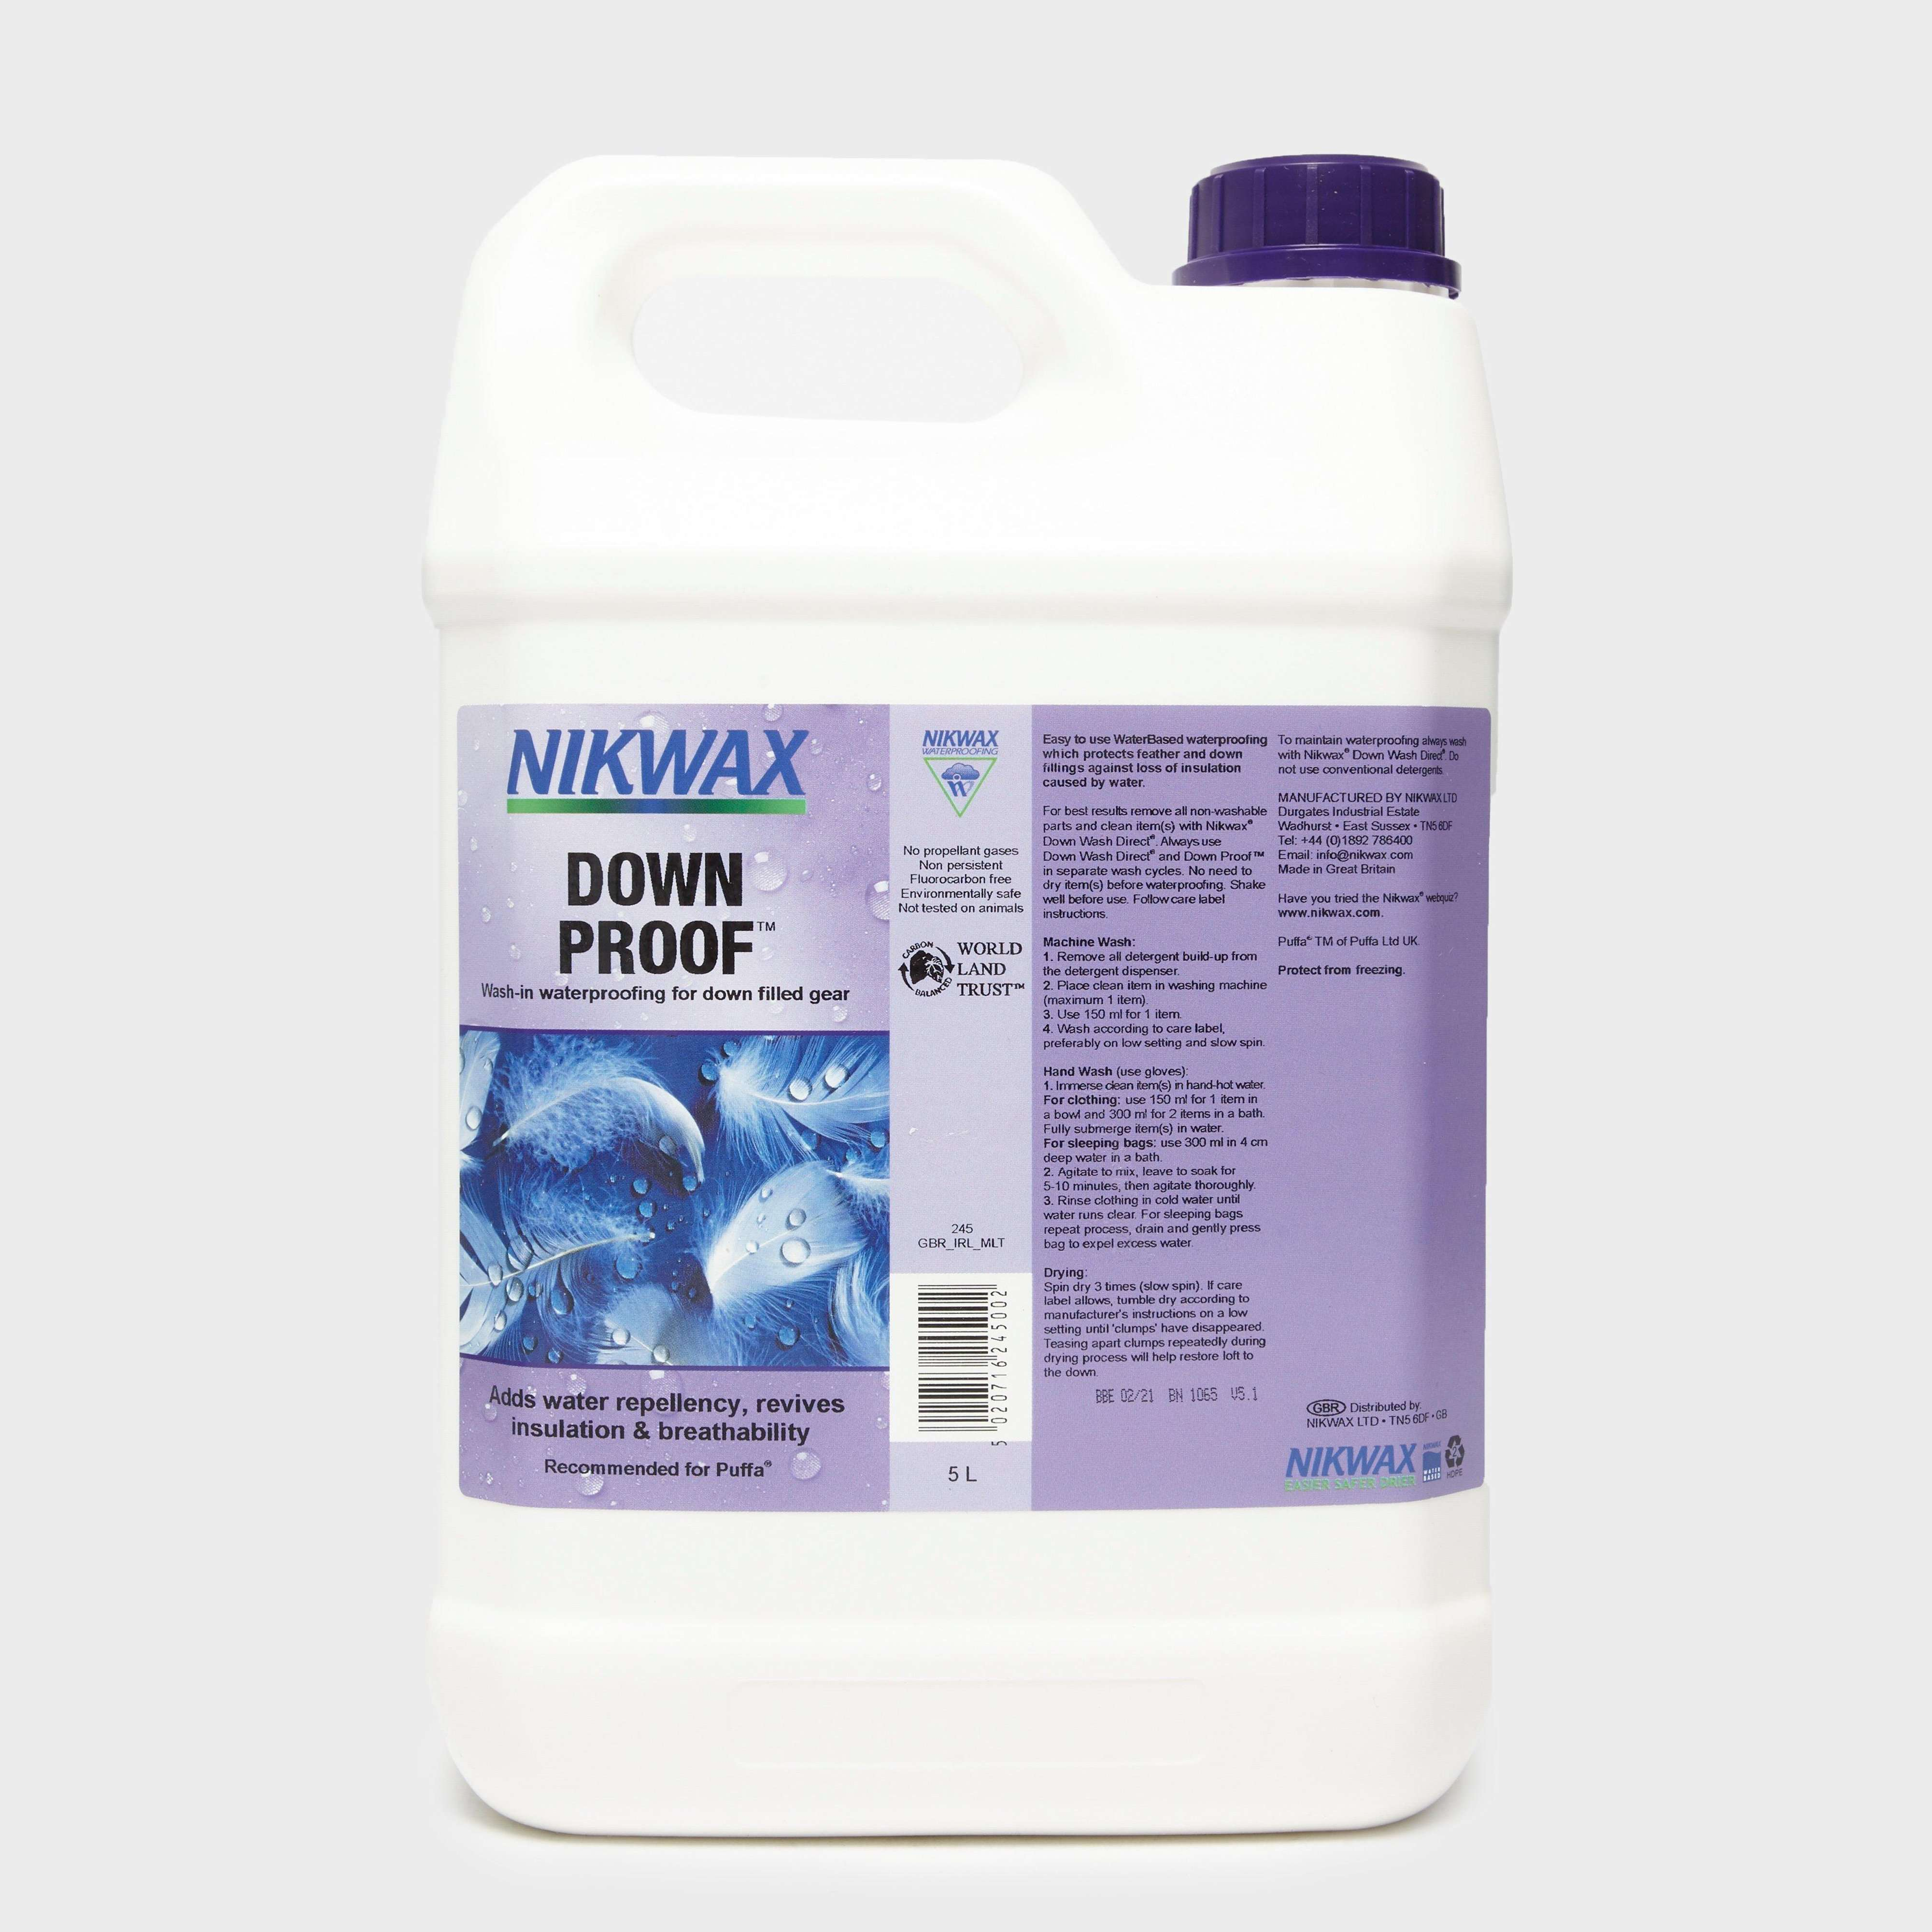 NIKWAX Down Proof 5L